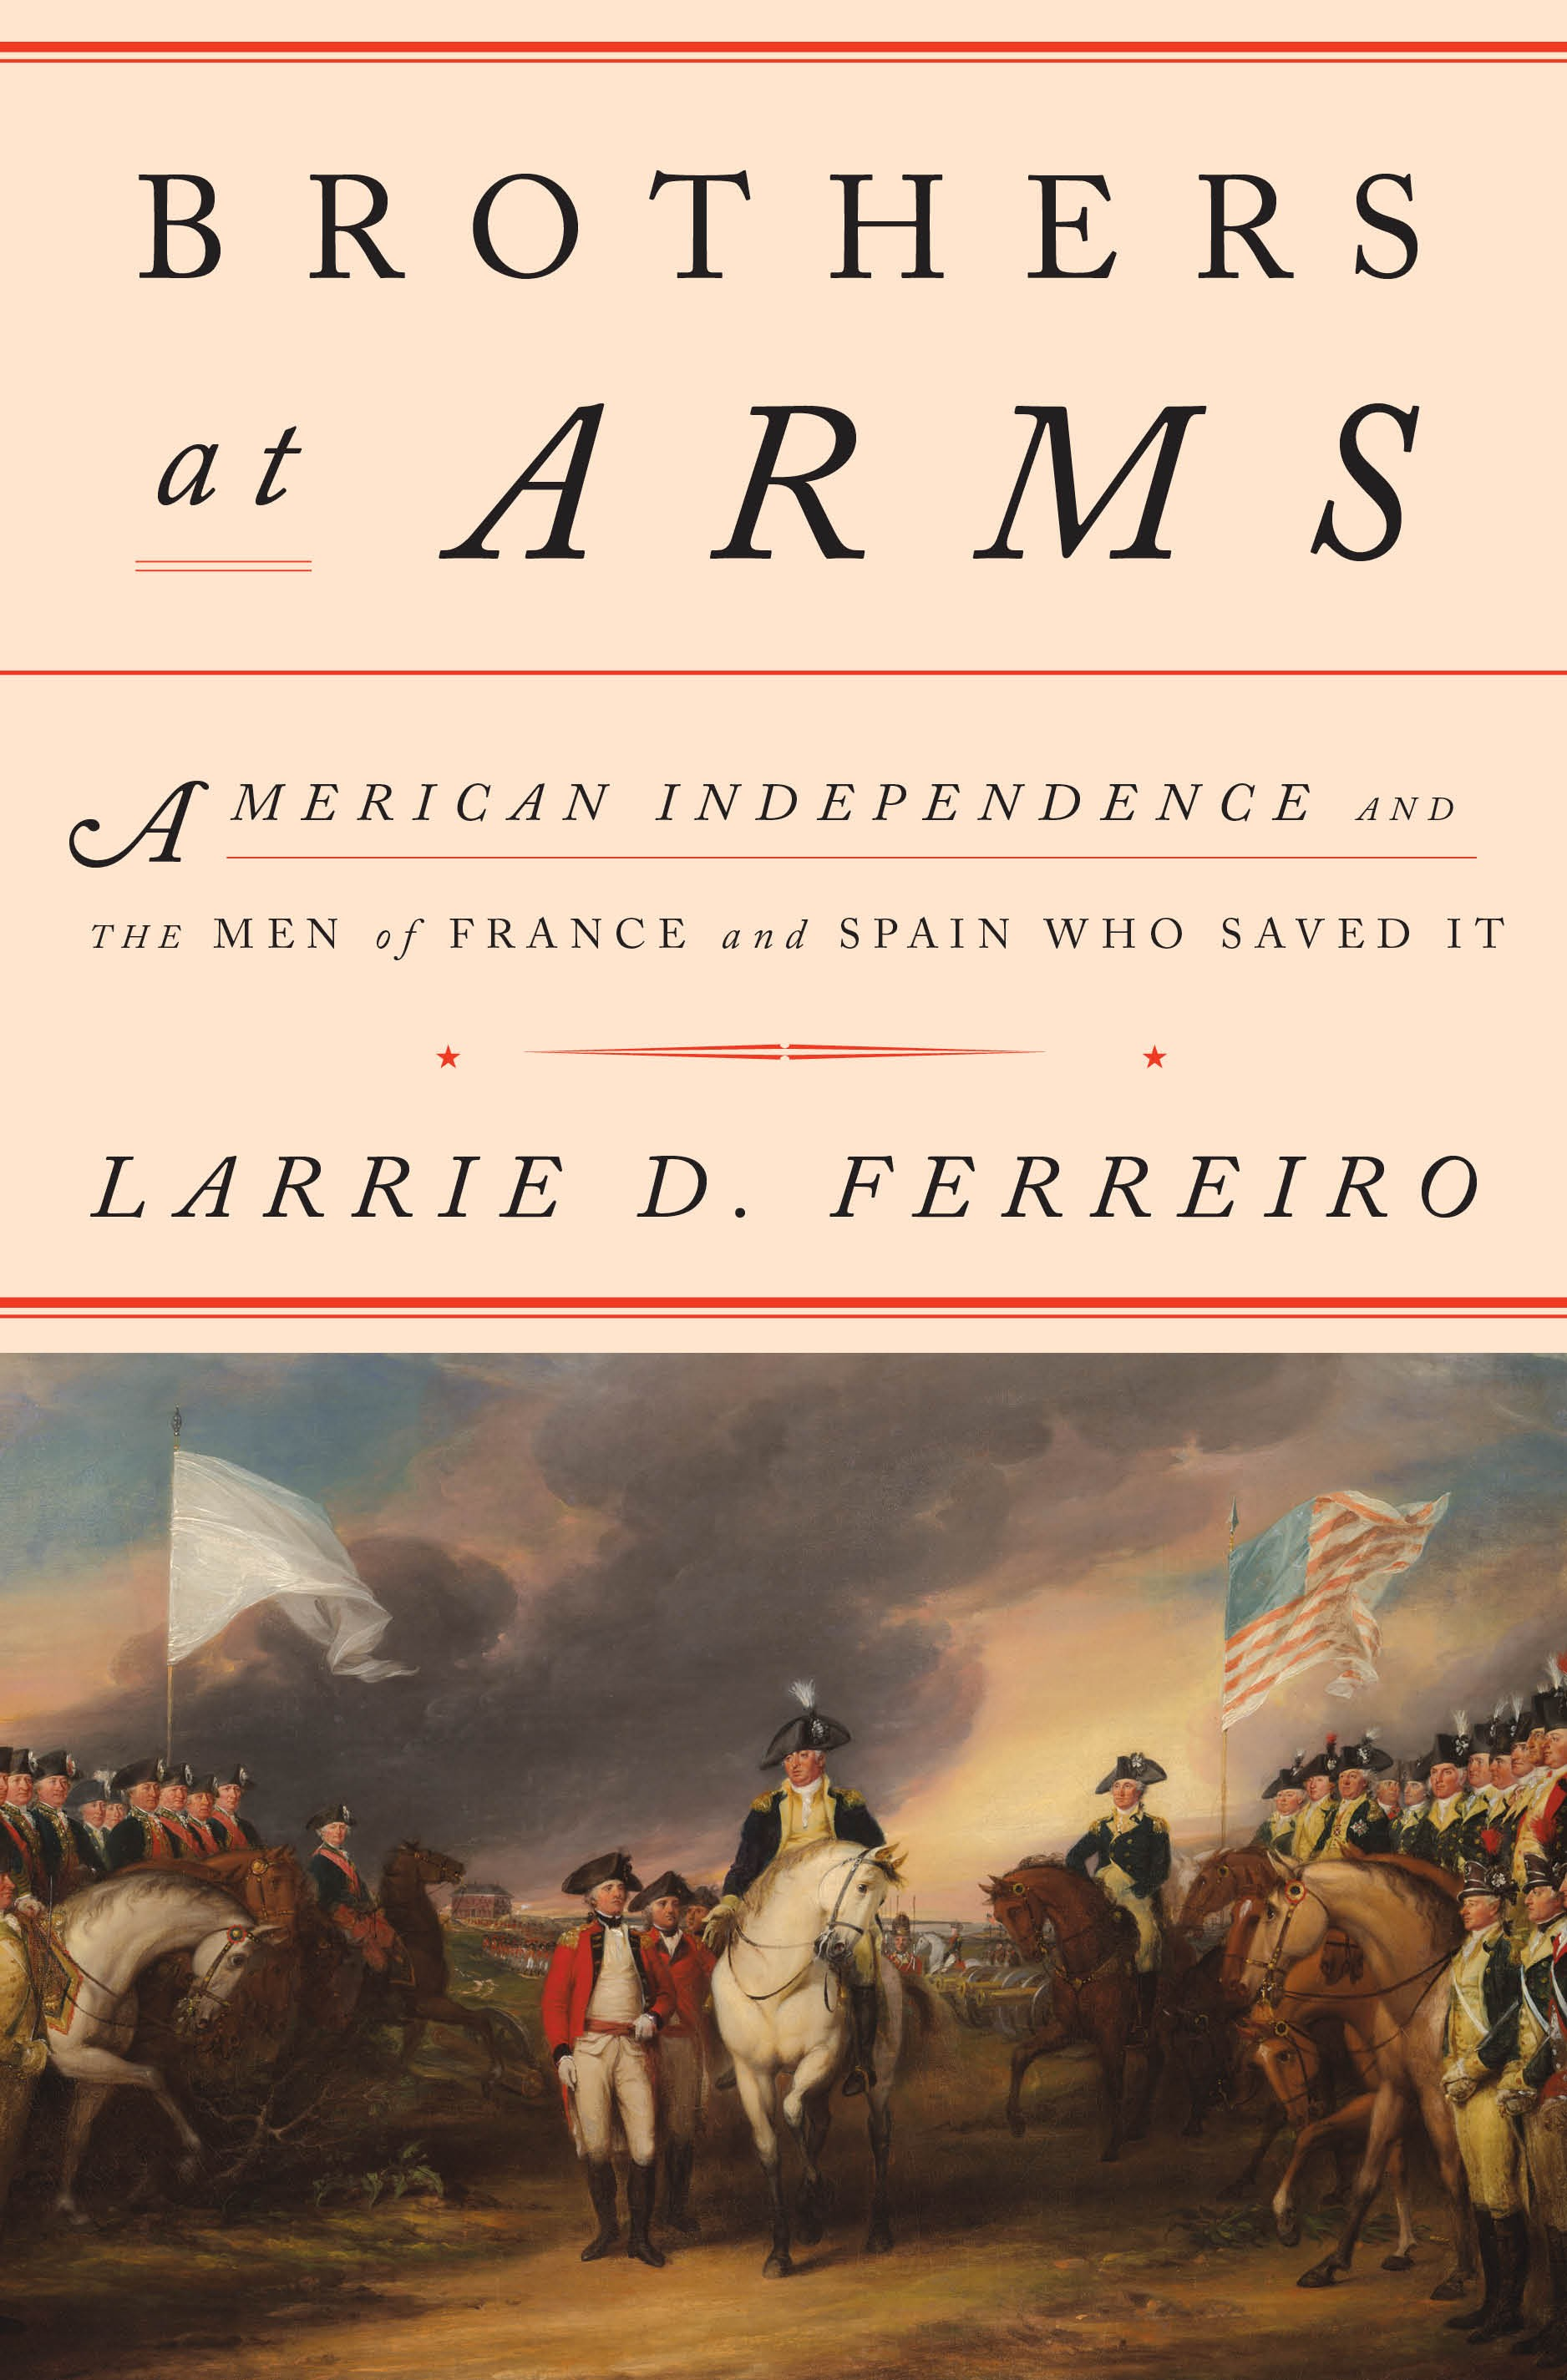 Book cover of Brother at Arms, author Stevens Professor Larrie Ferreiro